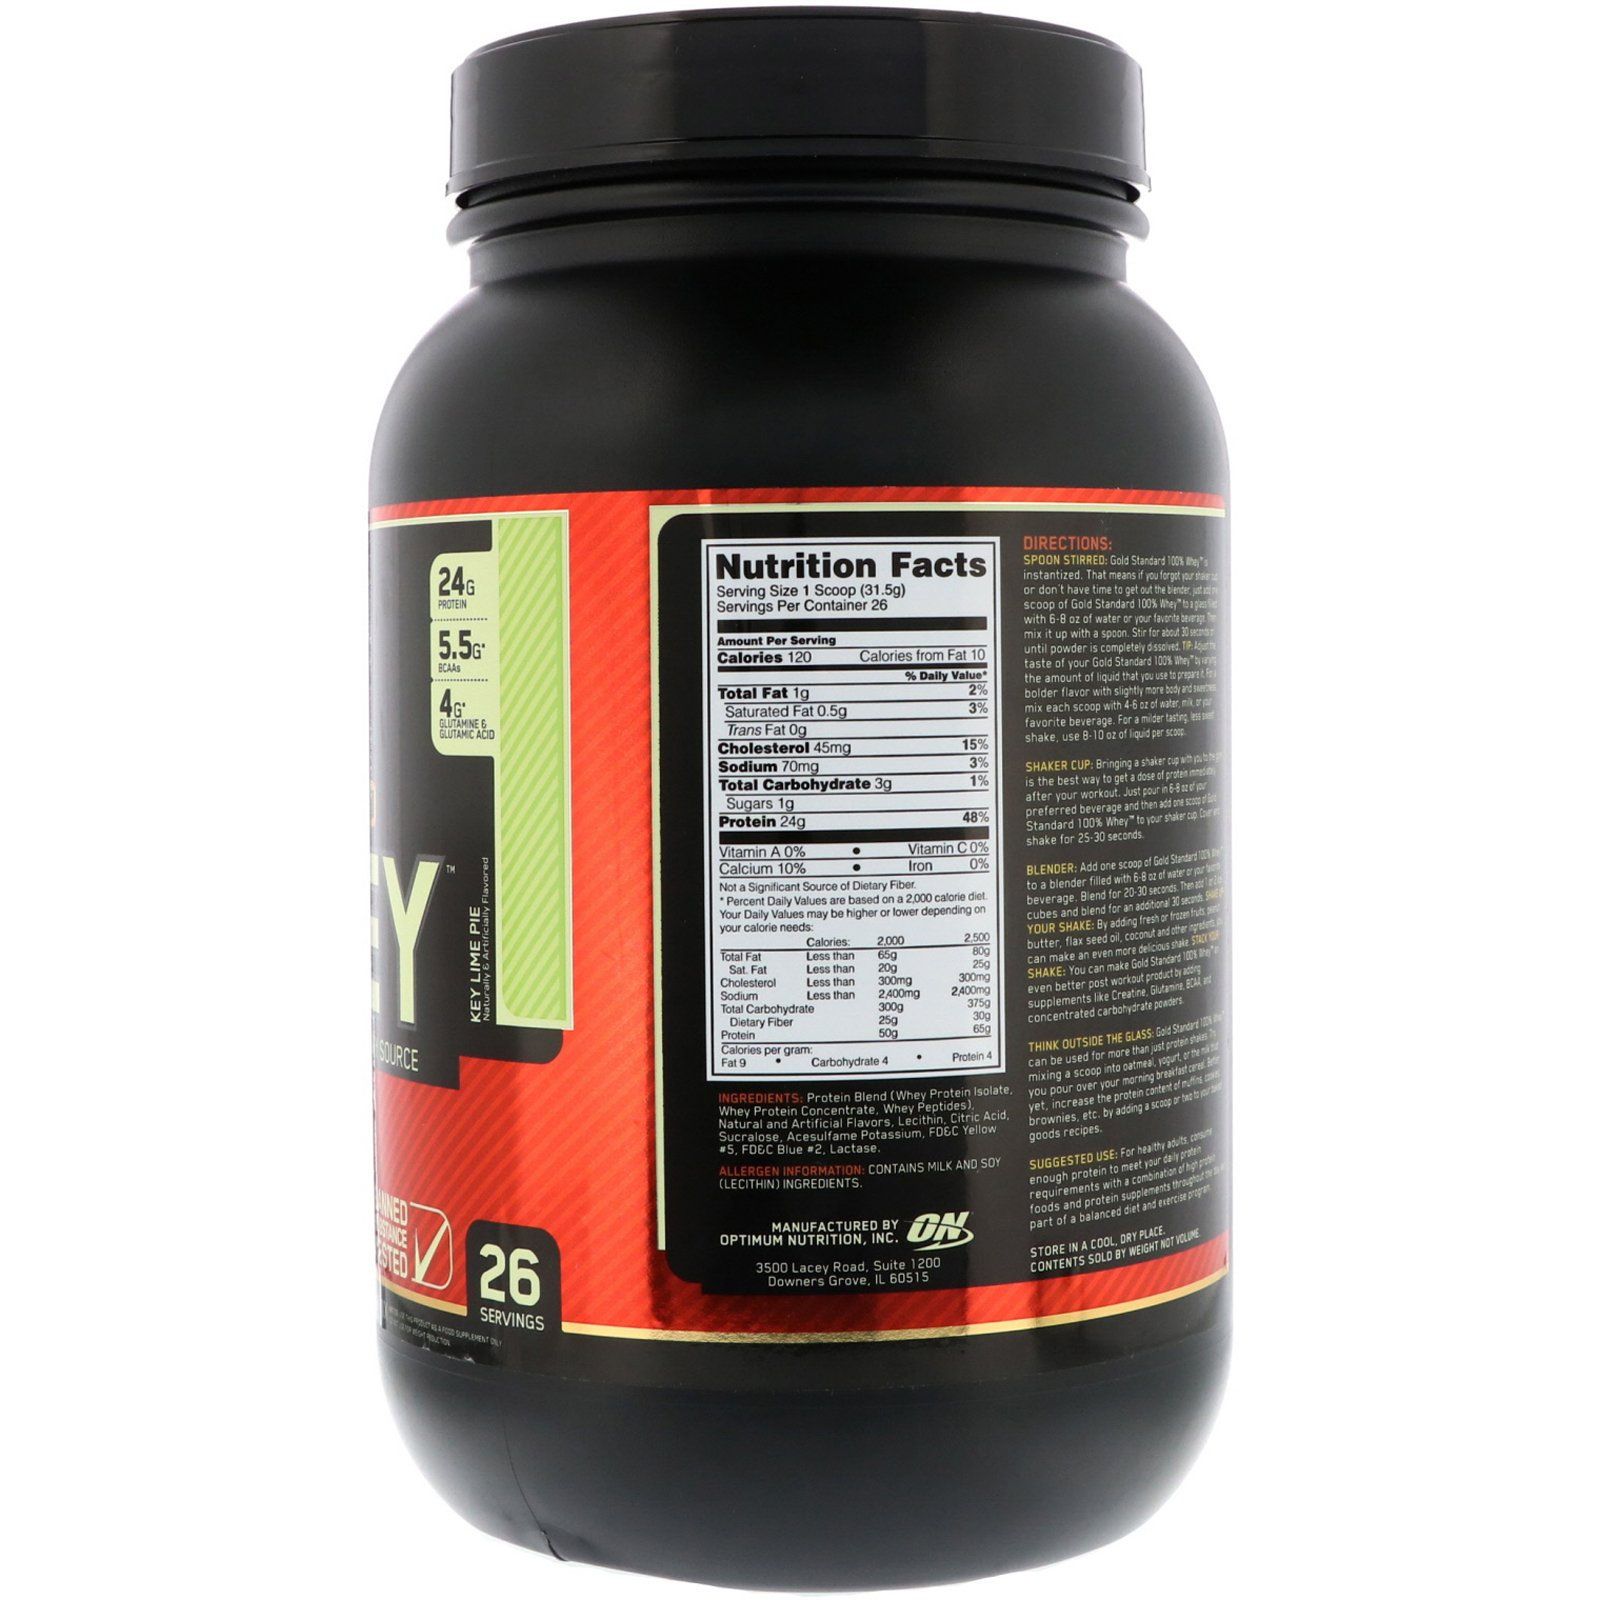 5e89ee70a By Optimum Nutrition. Click to zoom